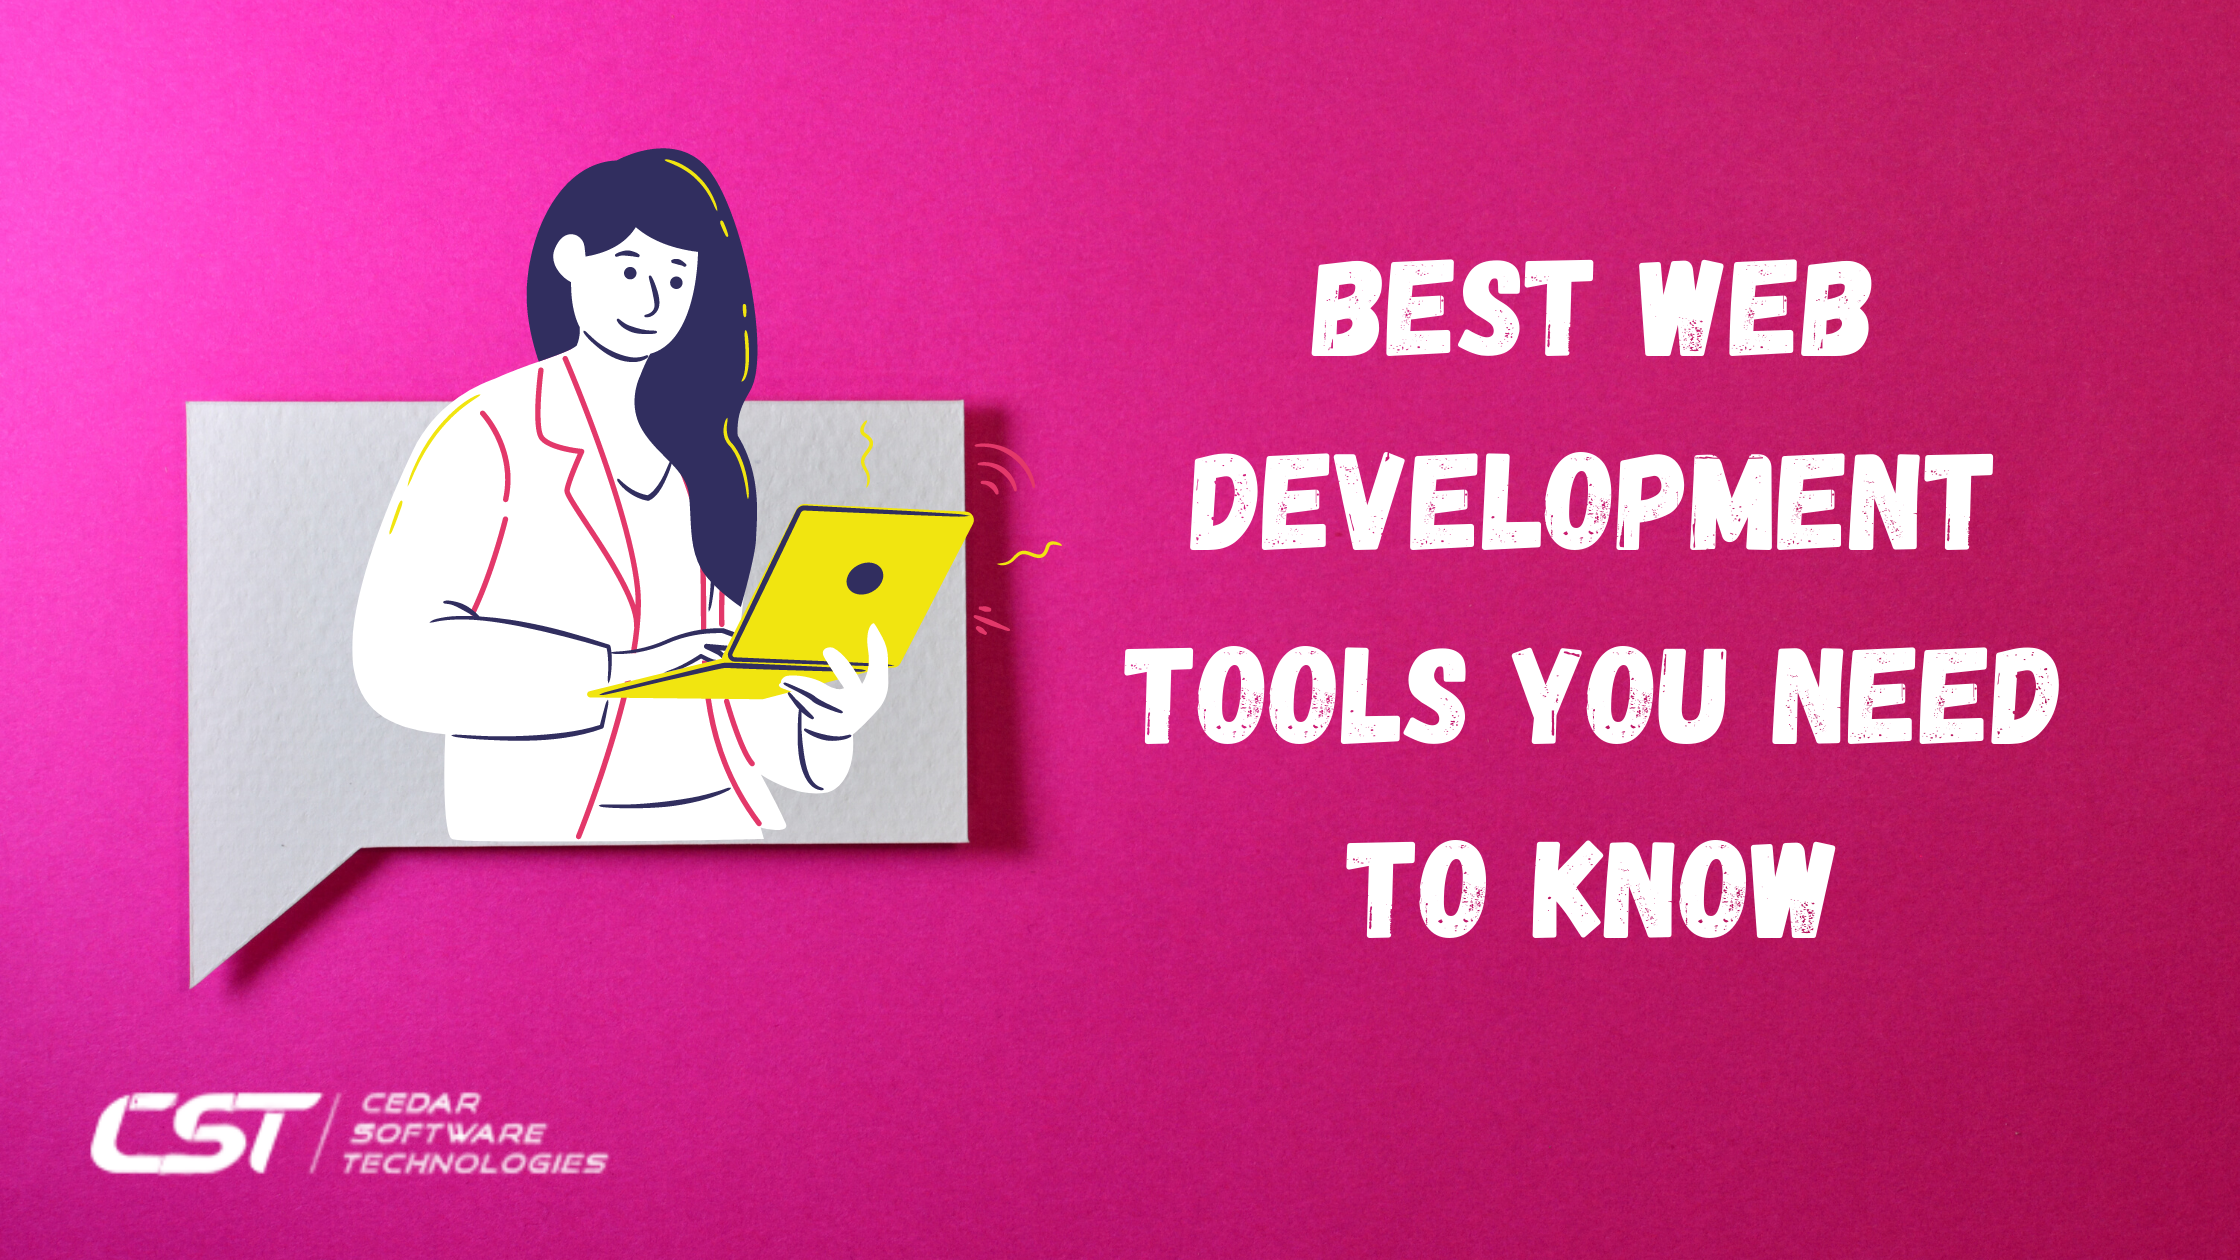 Best web development tools you need to know